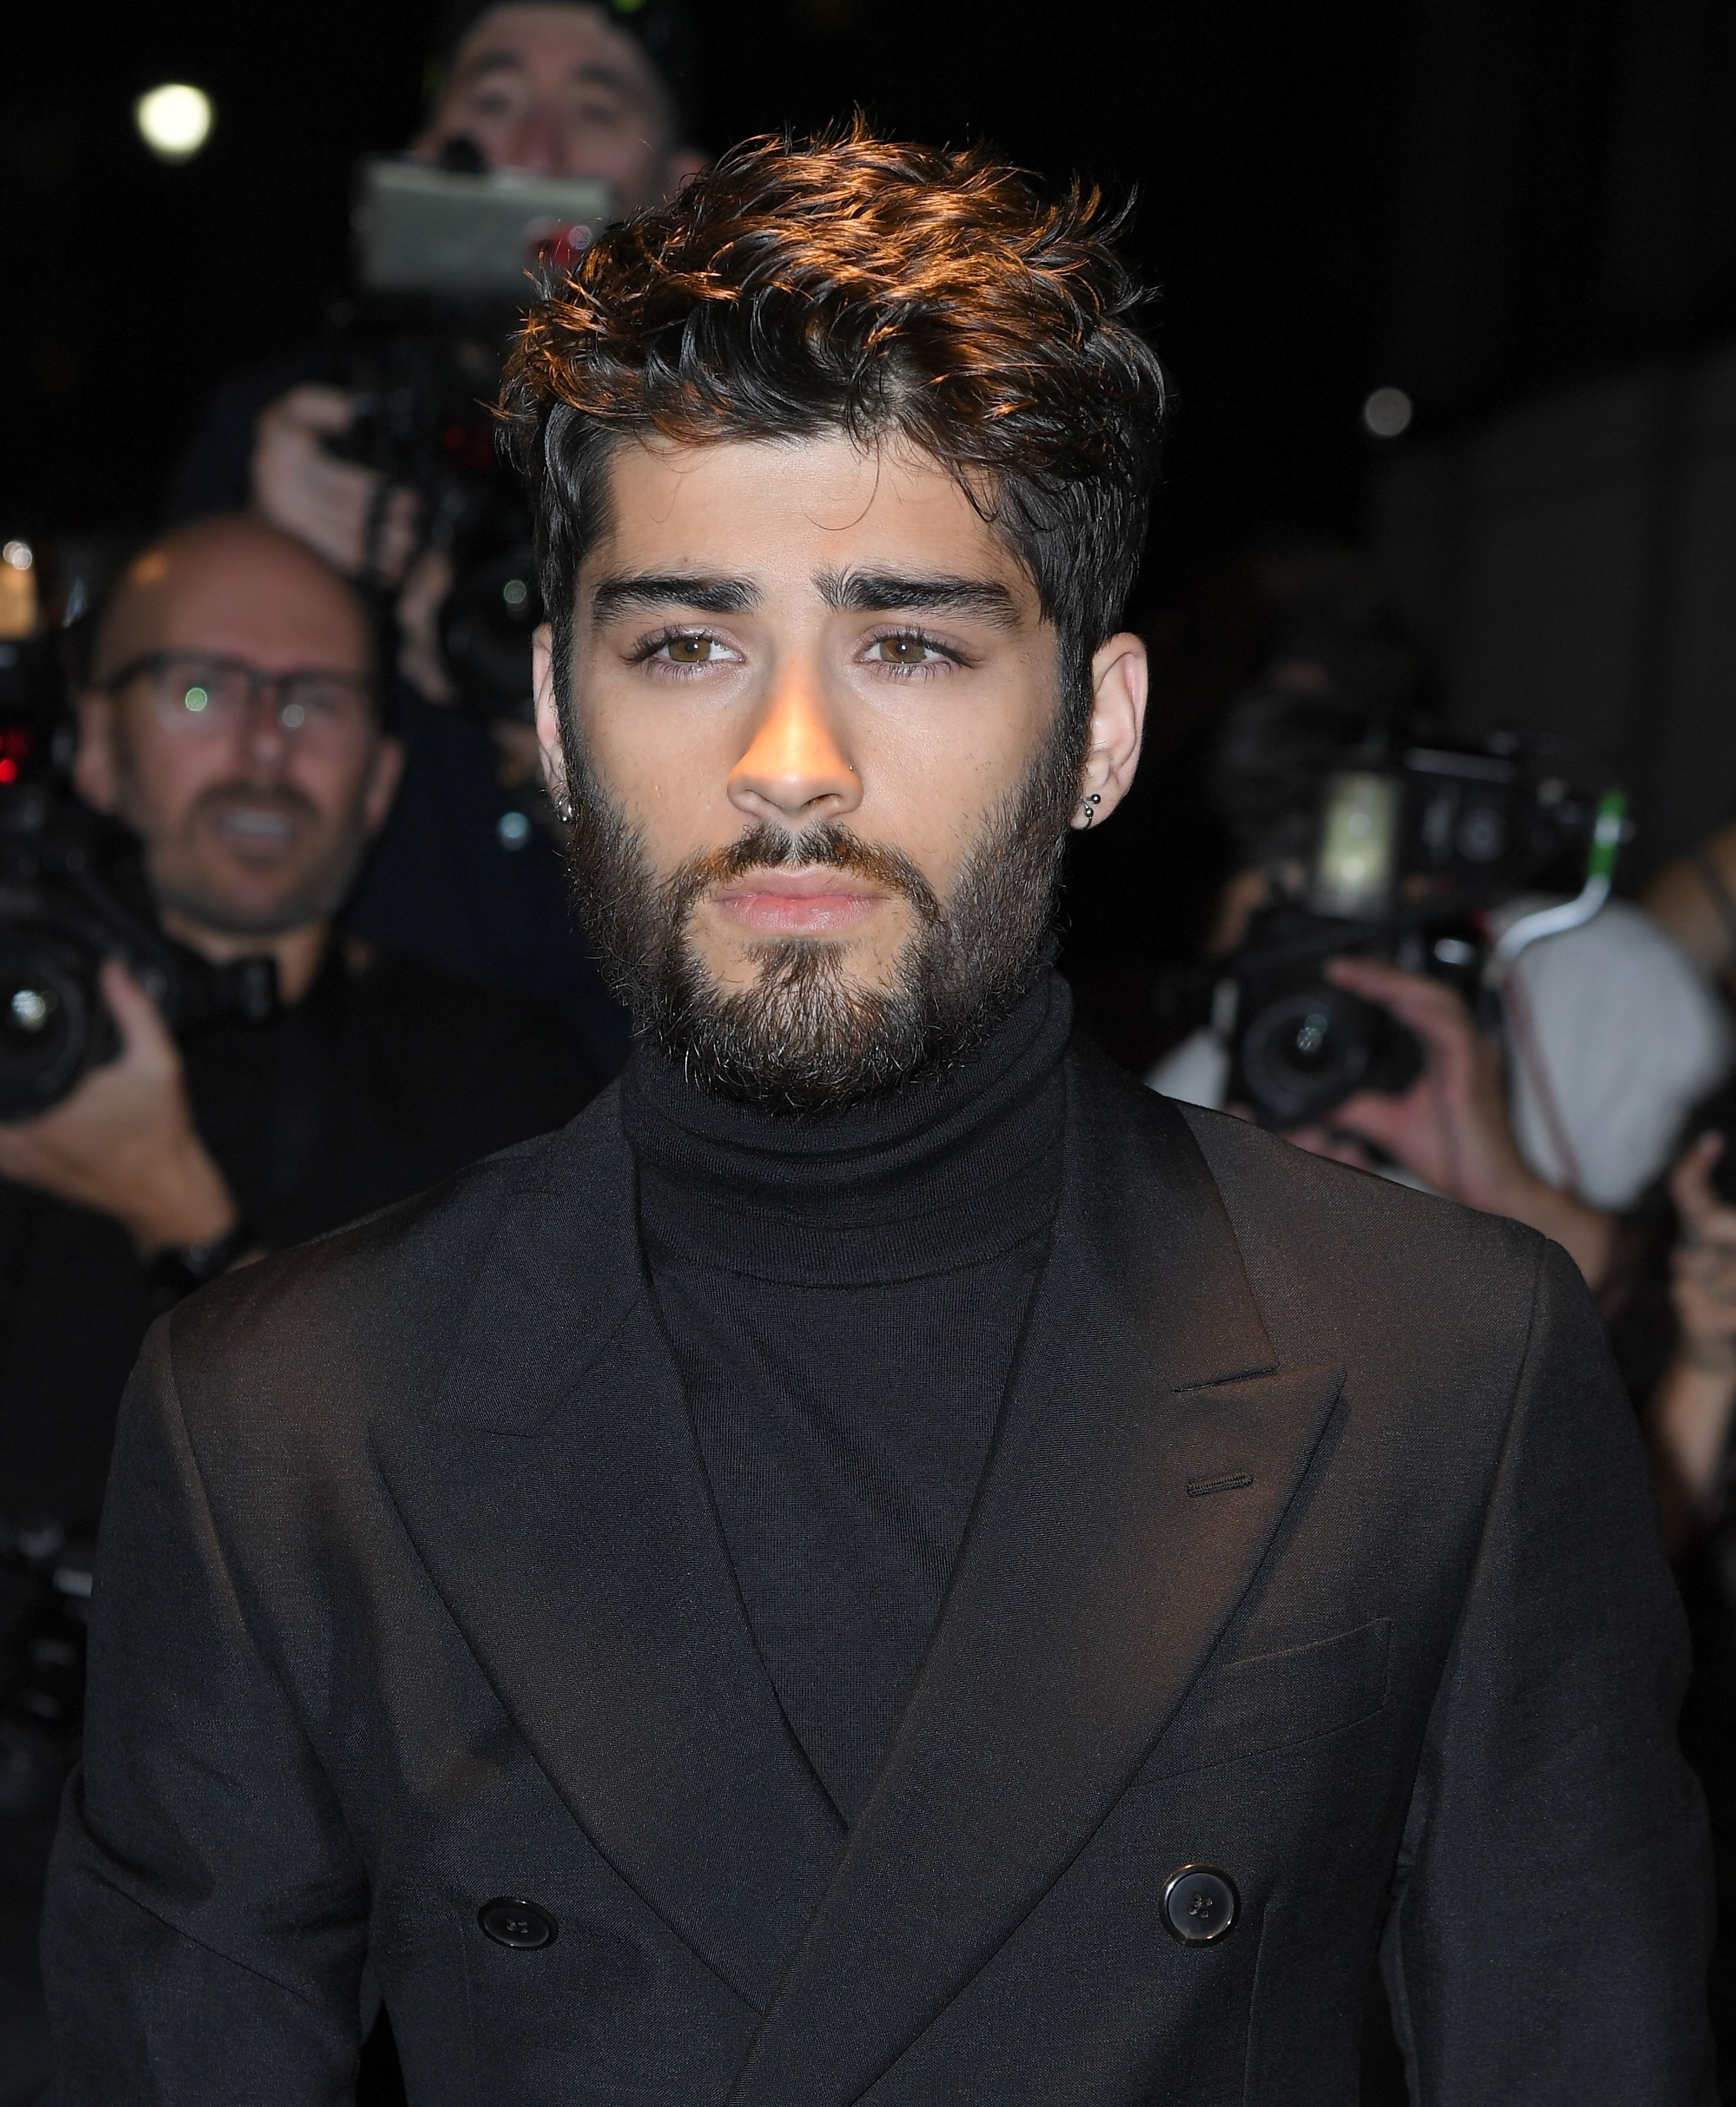 Zayn Malik opens up about his eating disorder battle